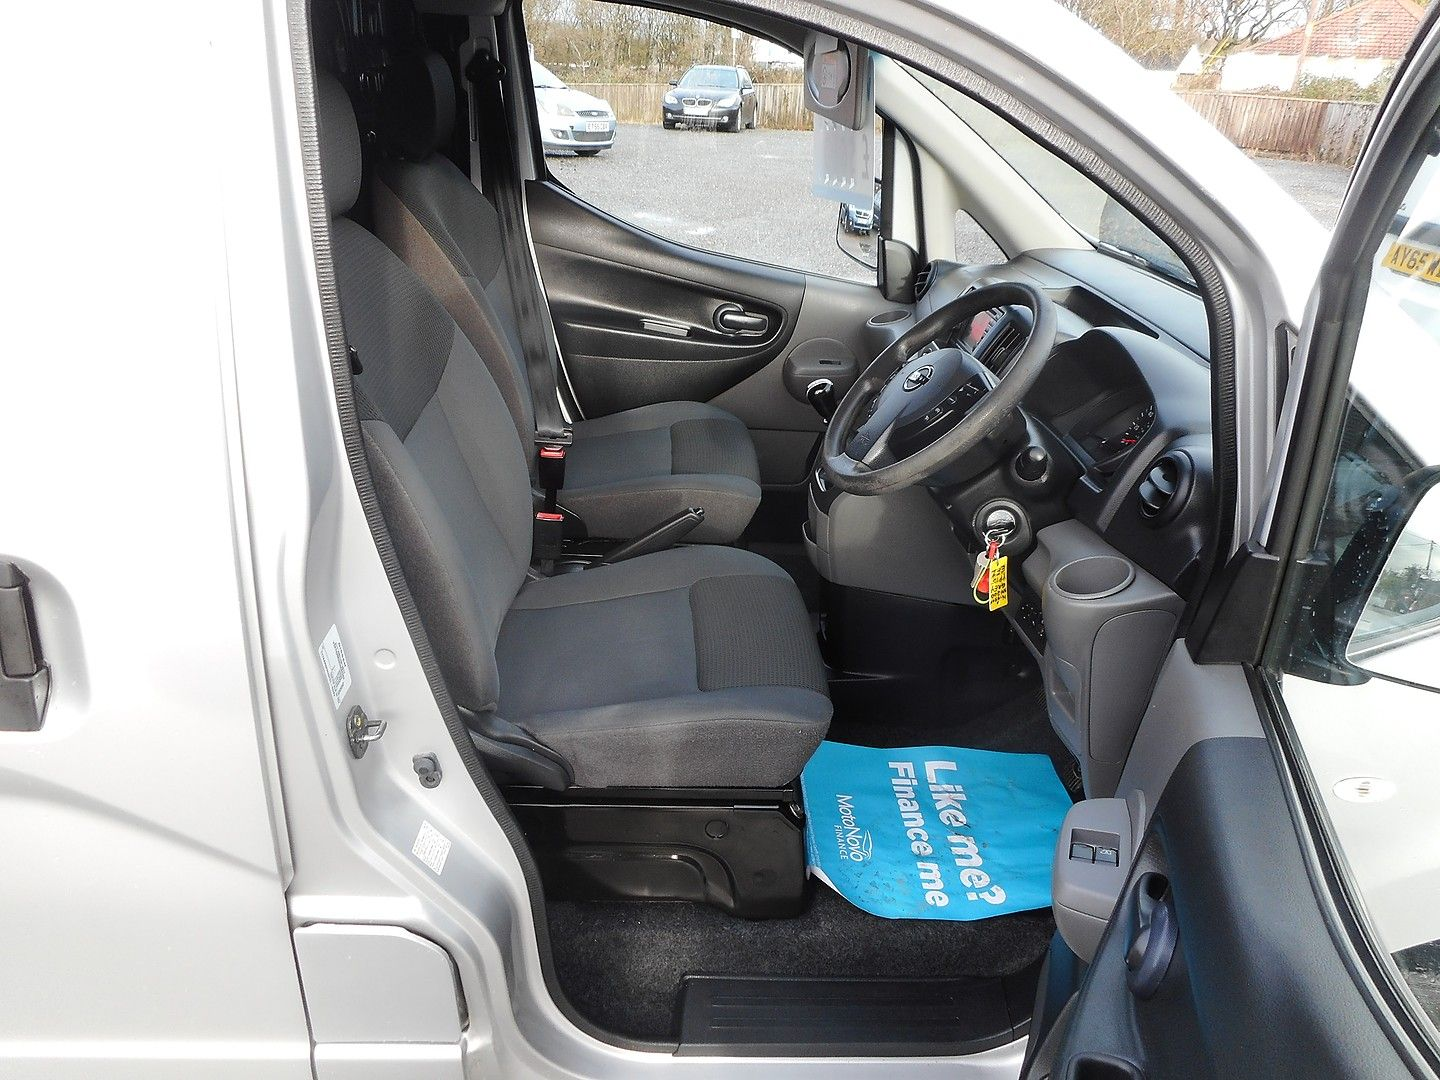 NISSAN NV200 Tekna 1.5 dCi 110PS (2014) - Picture 13